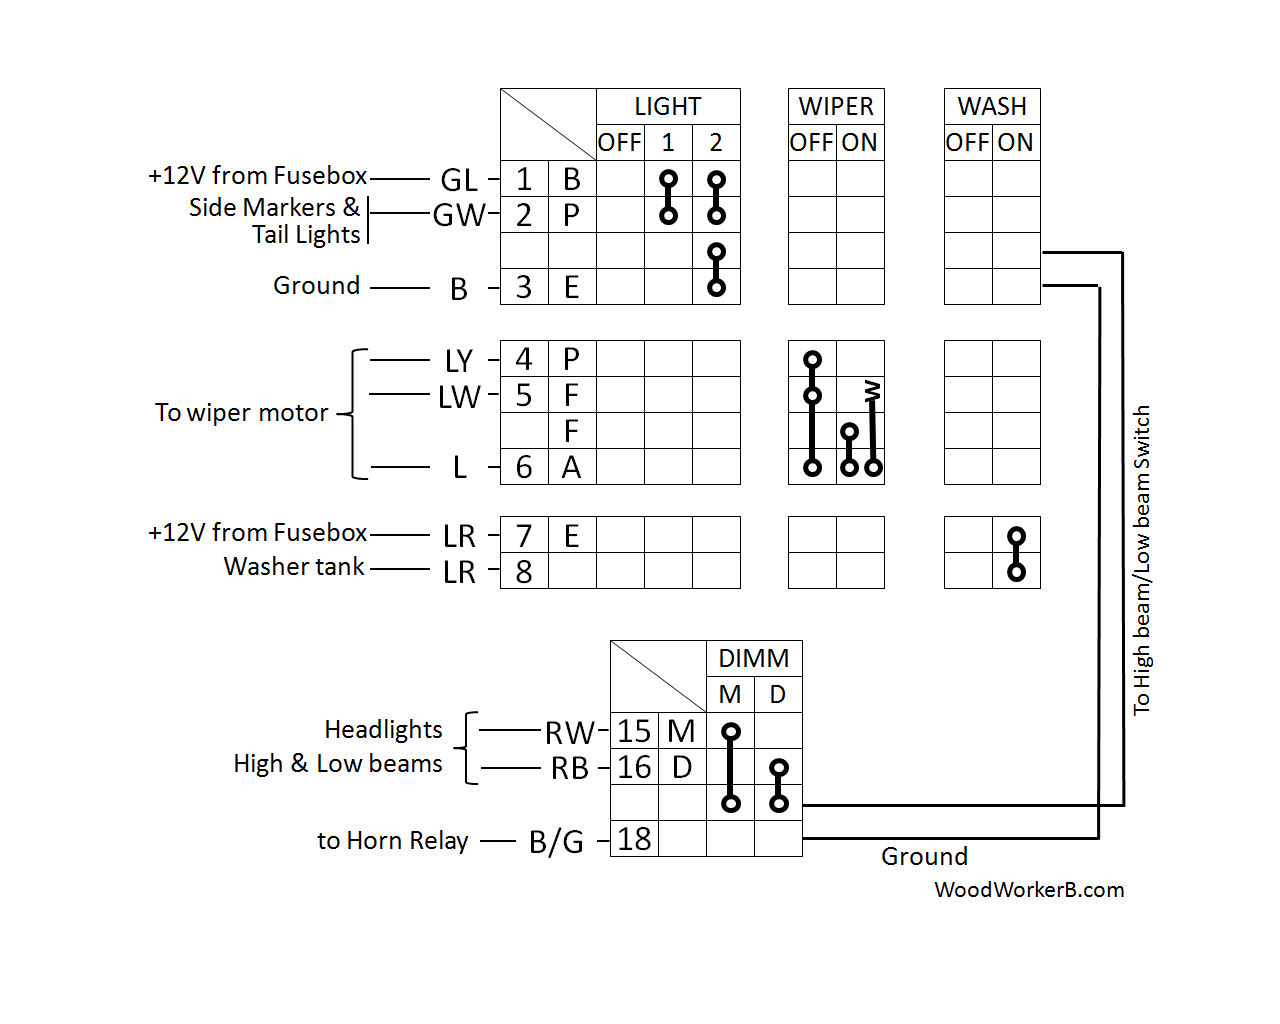 240z Multifunction Switches Woodworkerb 1973 Nissan Wiring Diagram